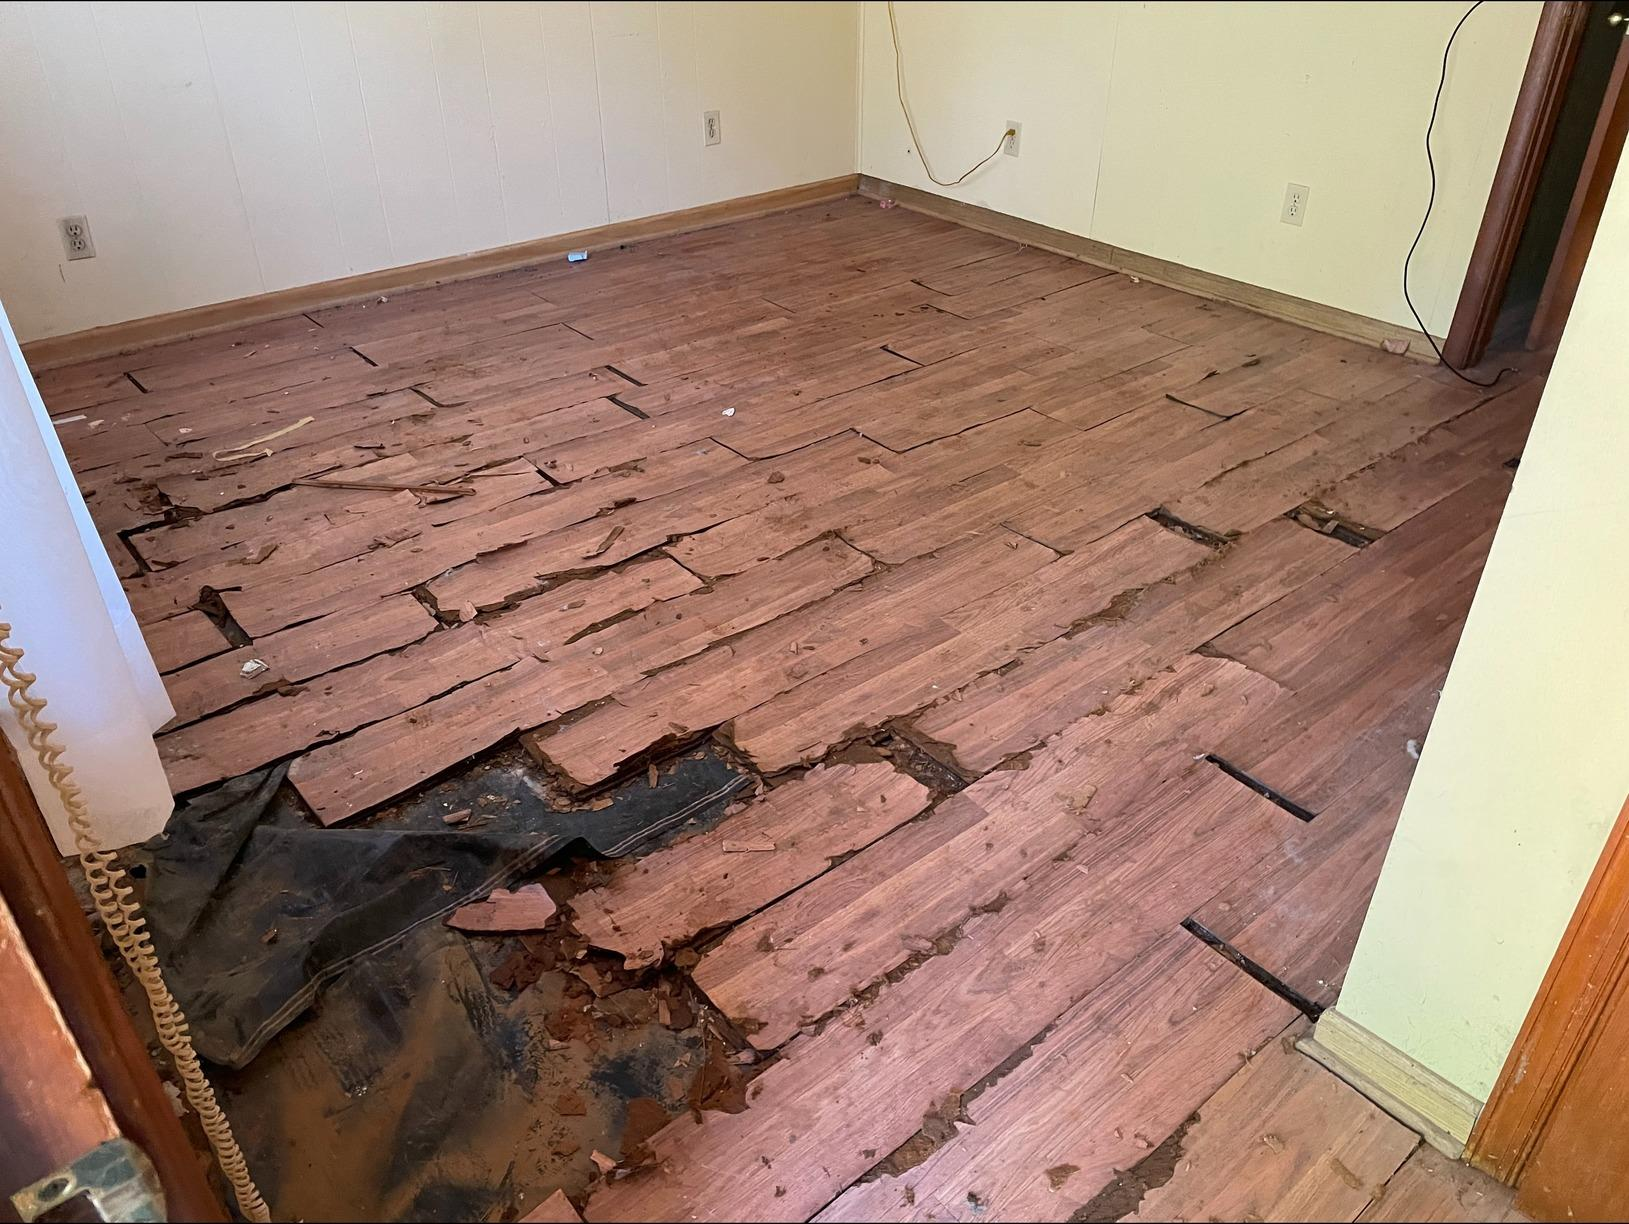 Water Damage Clean Up in Williamsburg, VA - After Photo